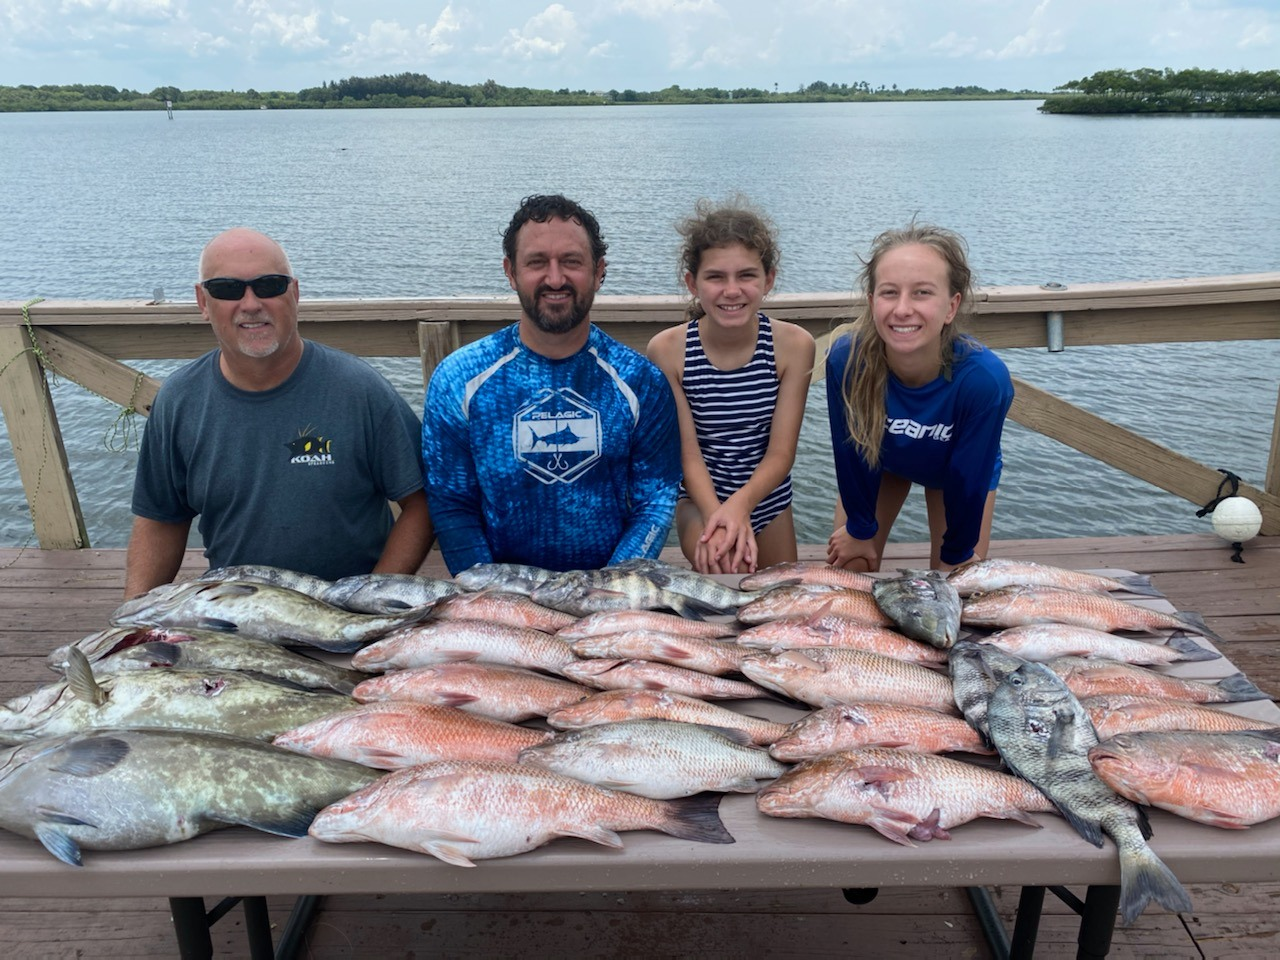 One families catch after a day of spear fishing on Terra Ceia Bay!